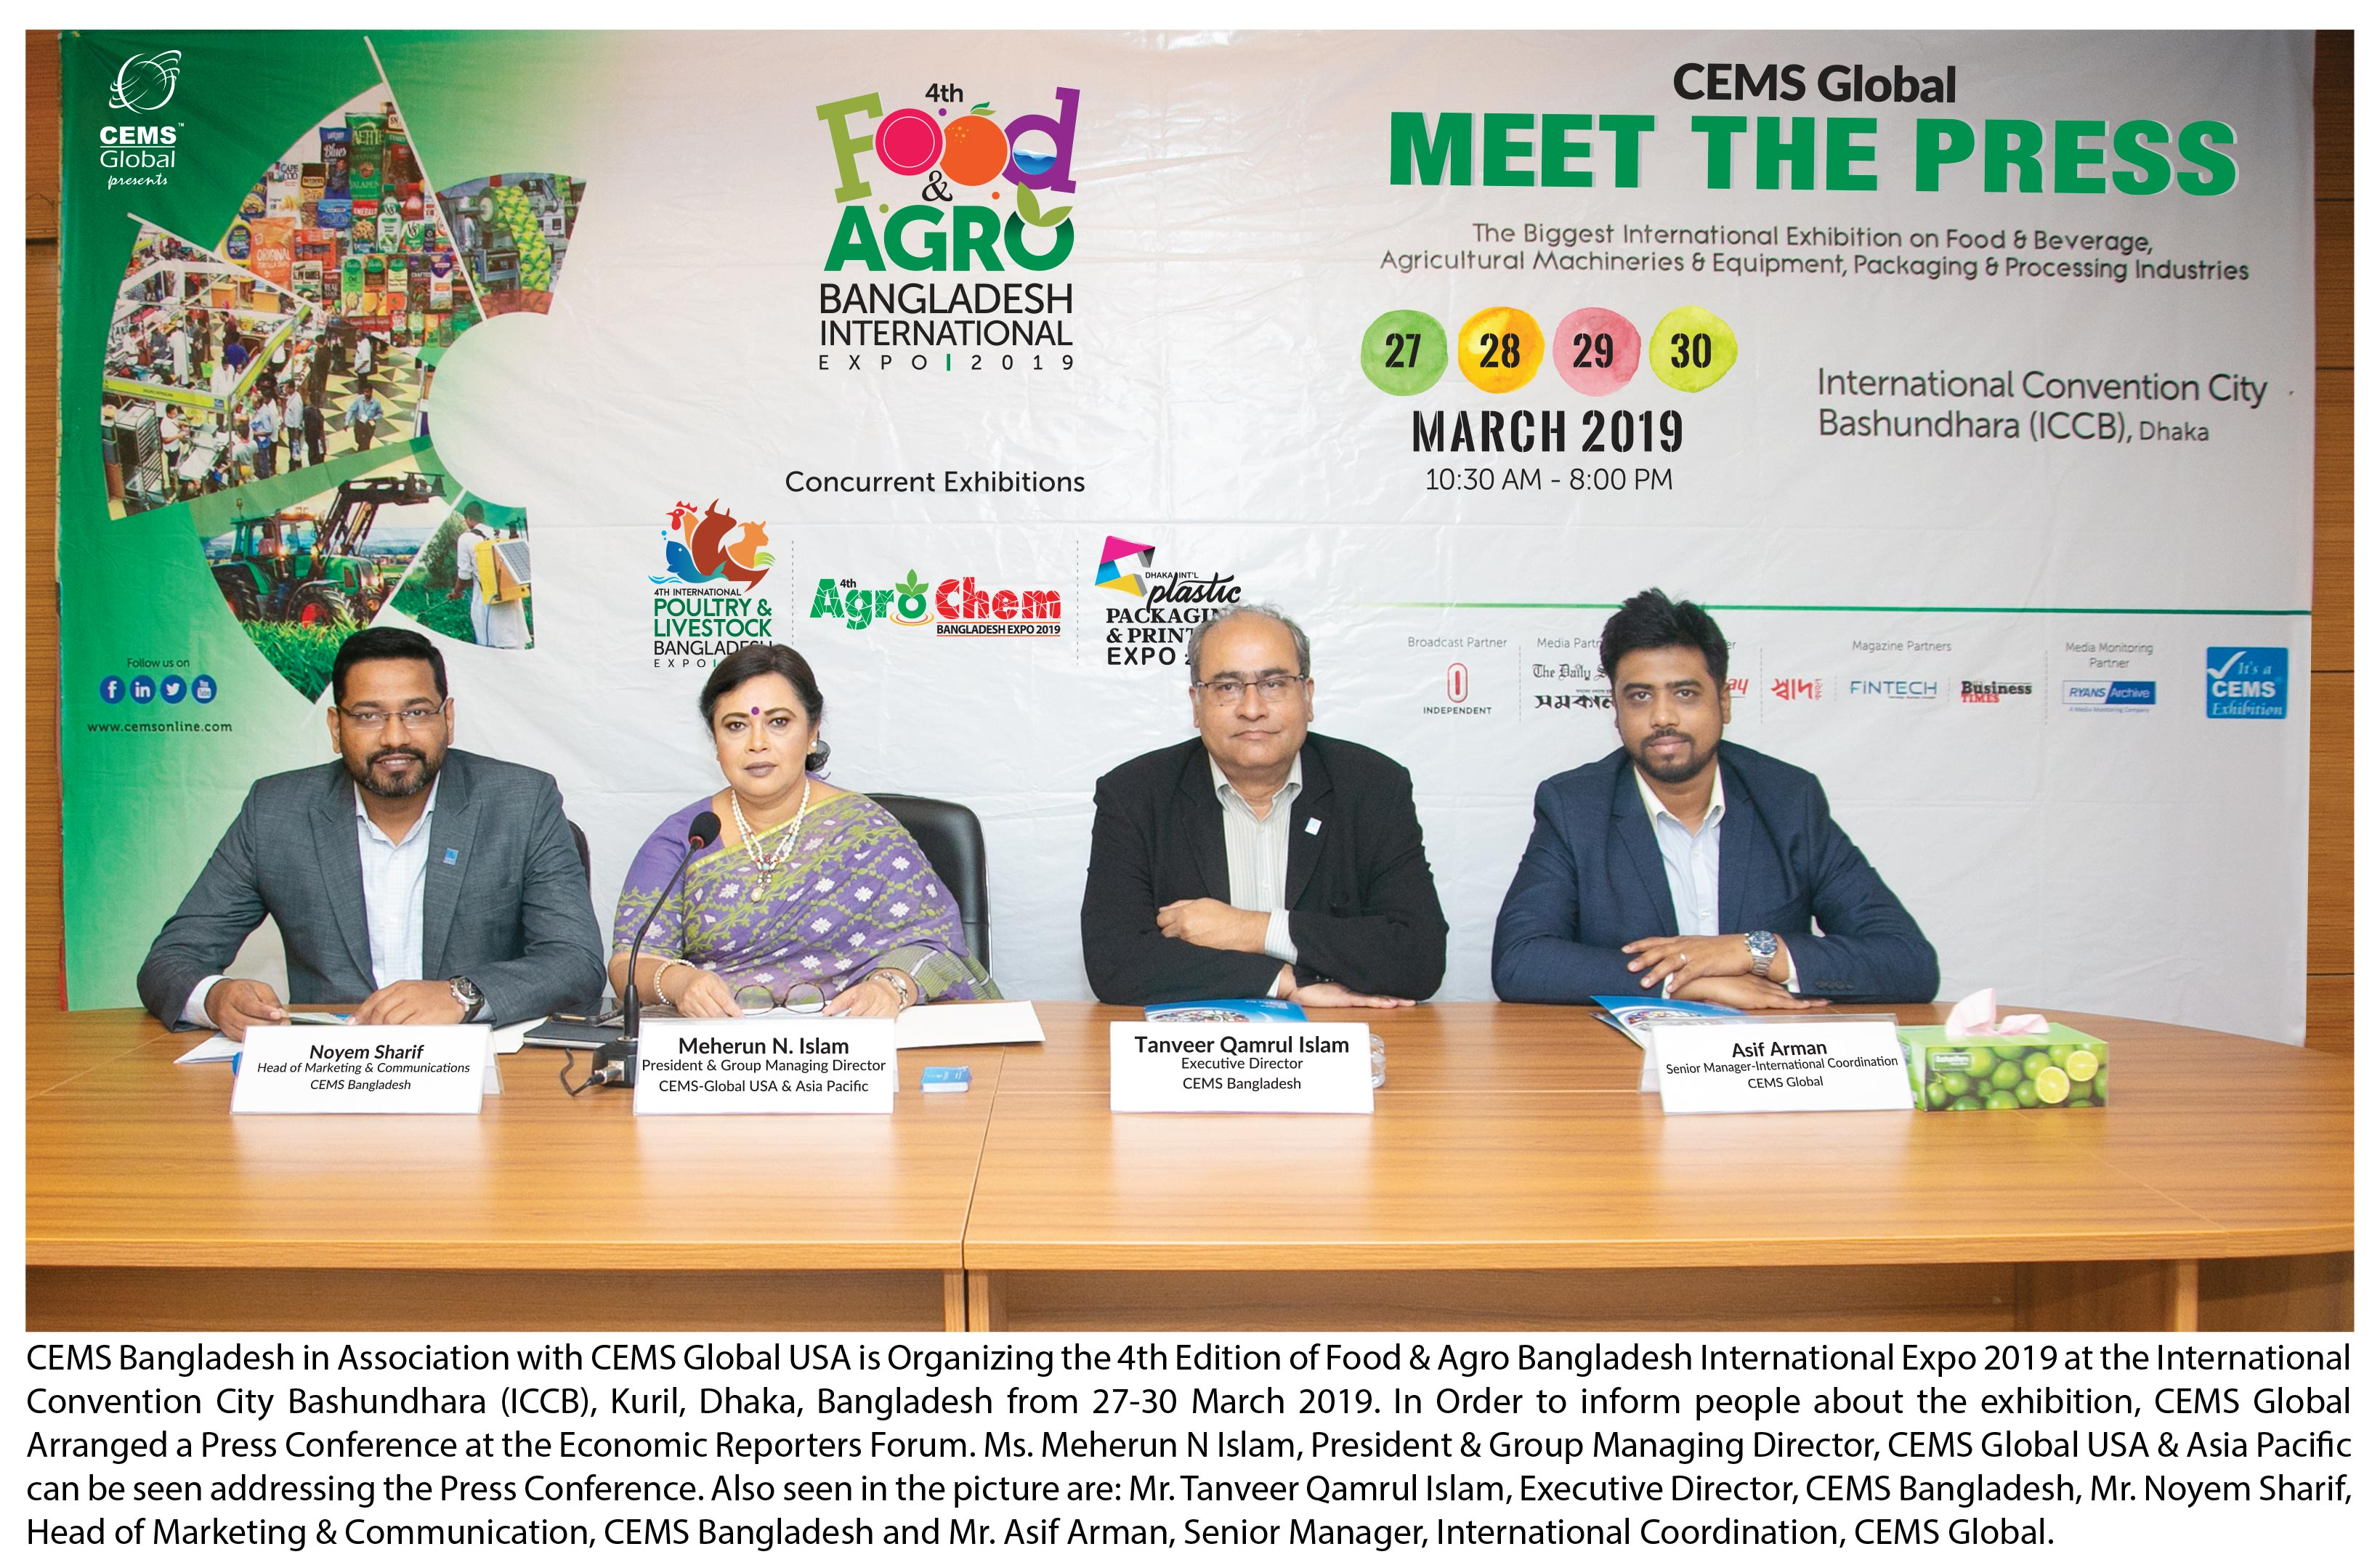 Food, agro expo begins in Dhaka March 27